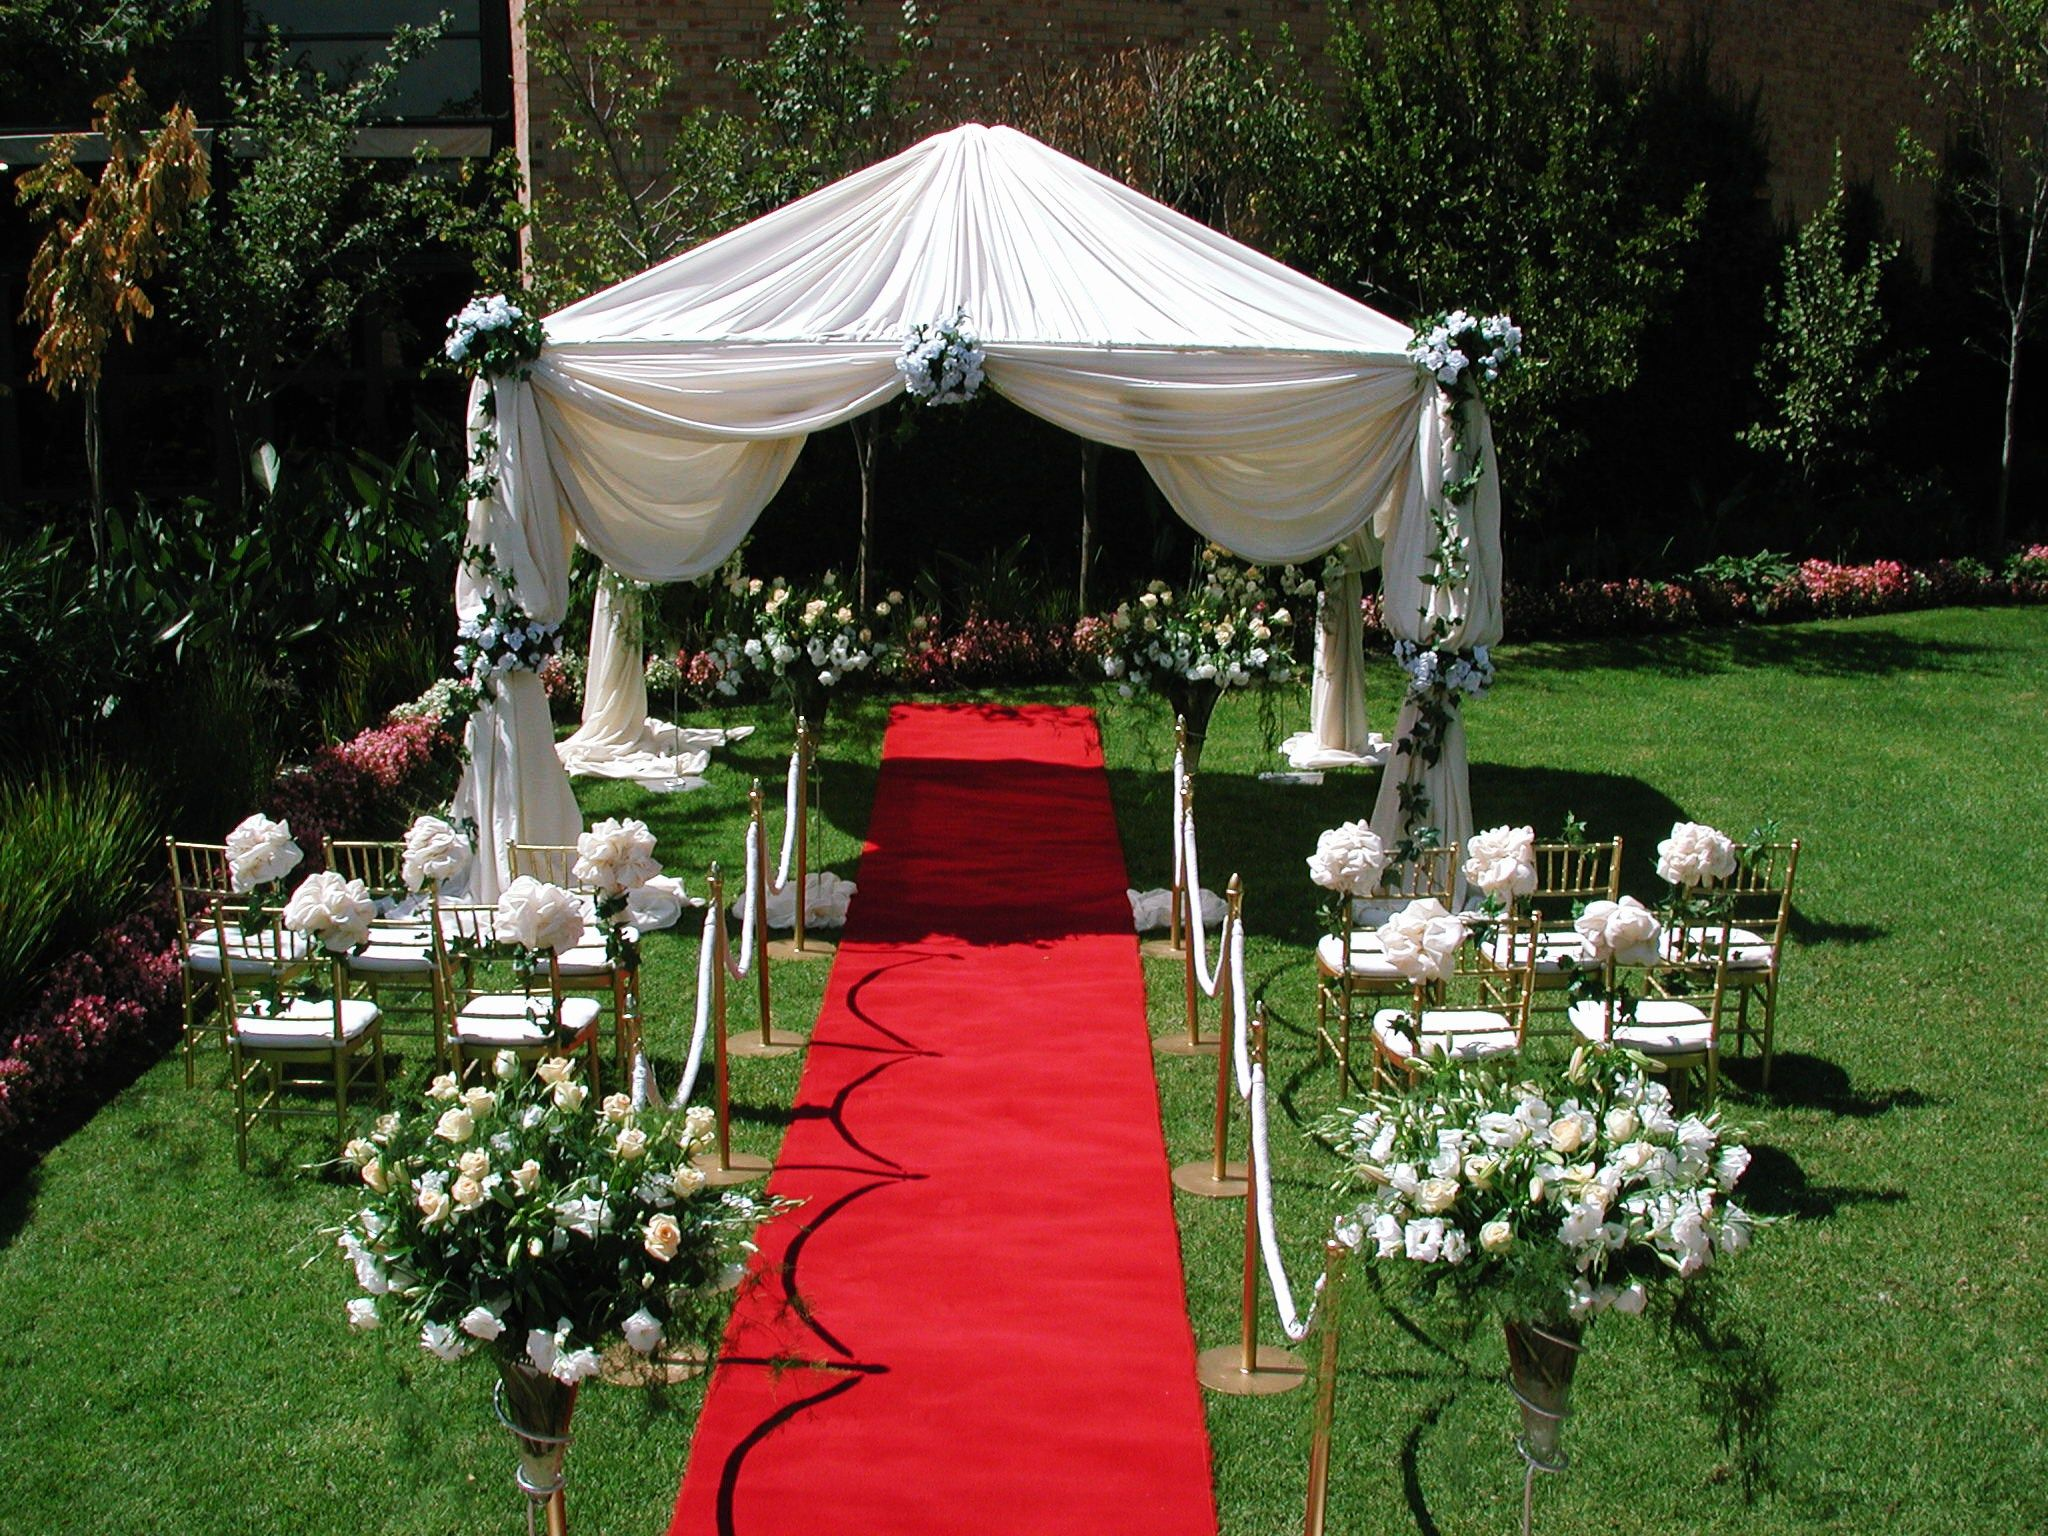 5 tips to decorate your outdoor wedding wedding ceremony arch 5 tips to decorate your outdoor wedding junglespirit Images